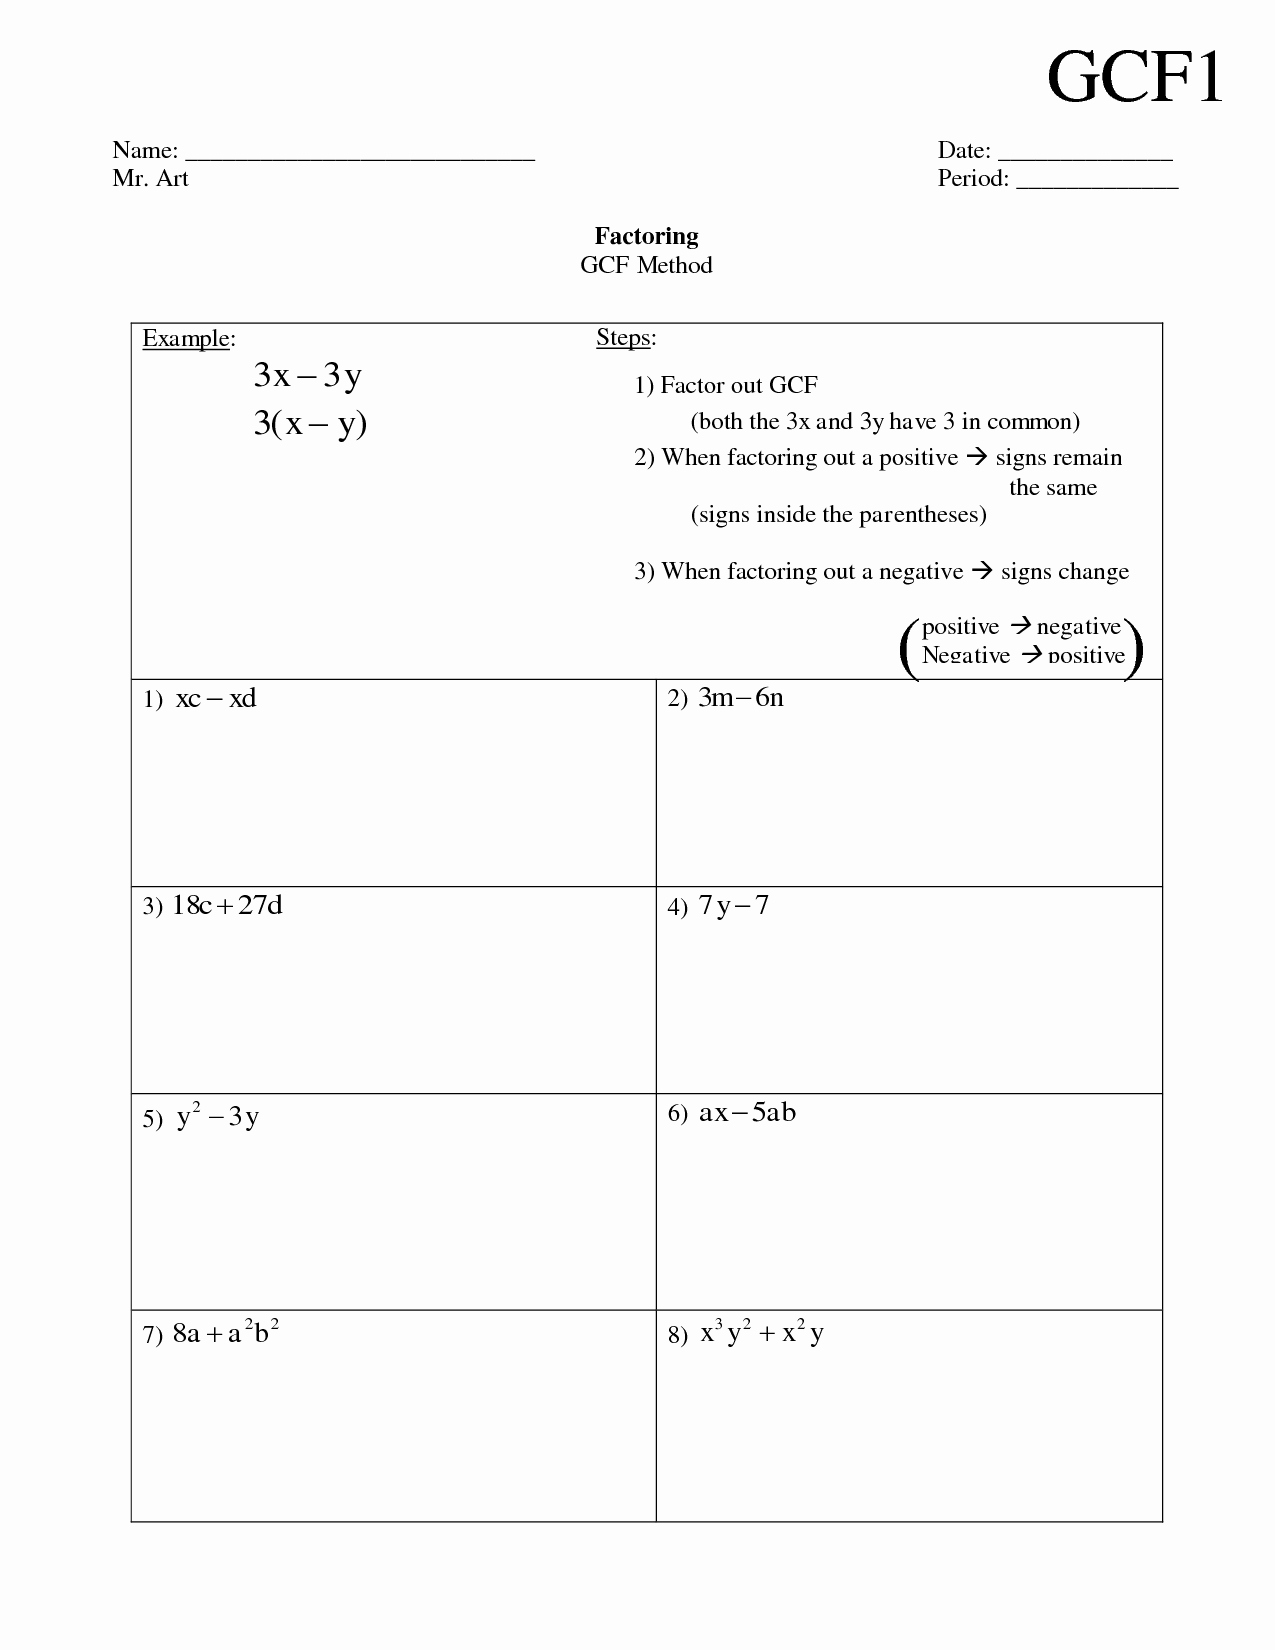 Factoring Greatest Common Factor Worksheet Luxury 17 Best Of Factor Tree Practice Worksheet